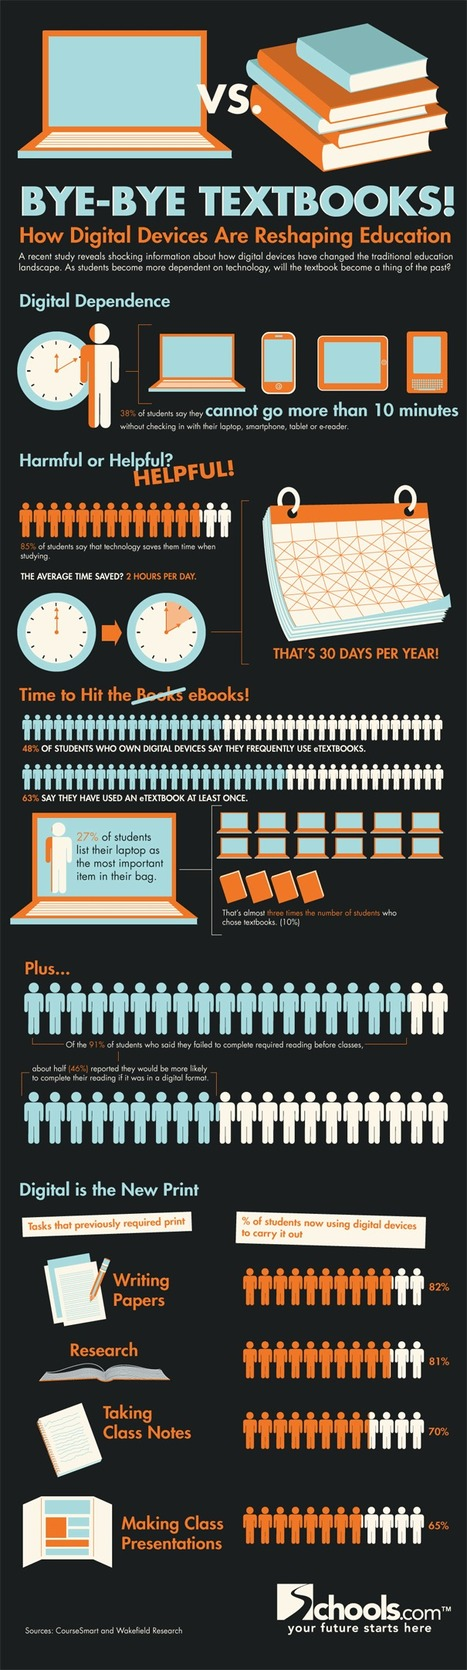 Bye-Bye Textbooks! How Digital Devices Are Reshaping Education Infographic | e-Learning Infographics | Ed Tech 4 Instructors | Scoop.it